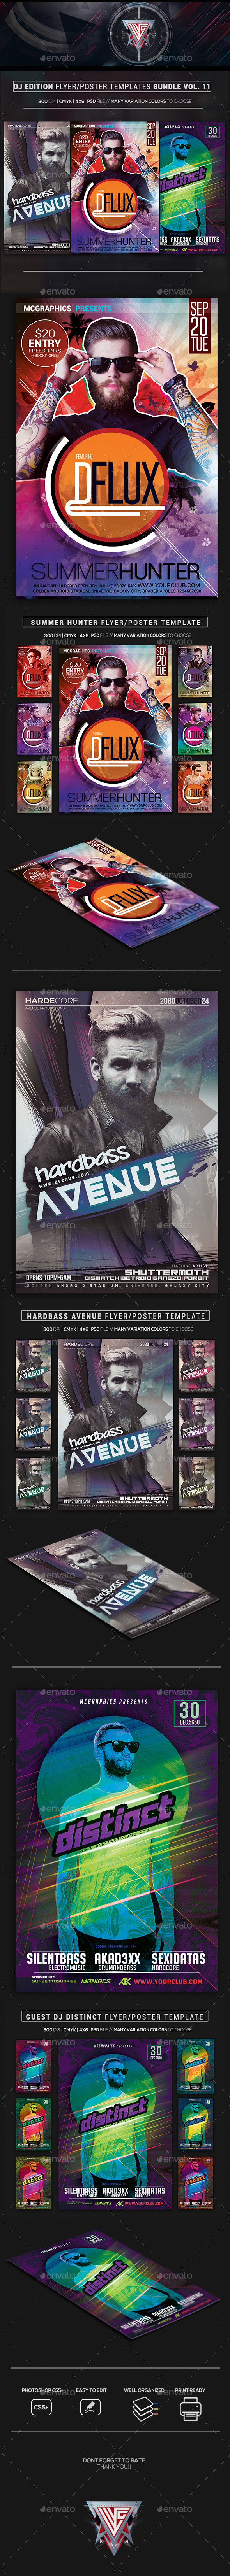 Guest DJ Party Flyer/Poster Bundle Vol. 11 - Events Flyers